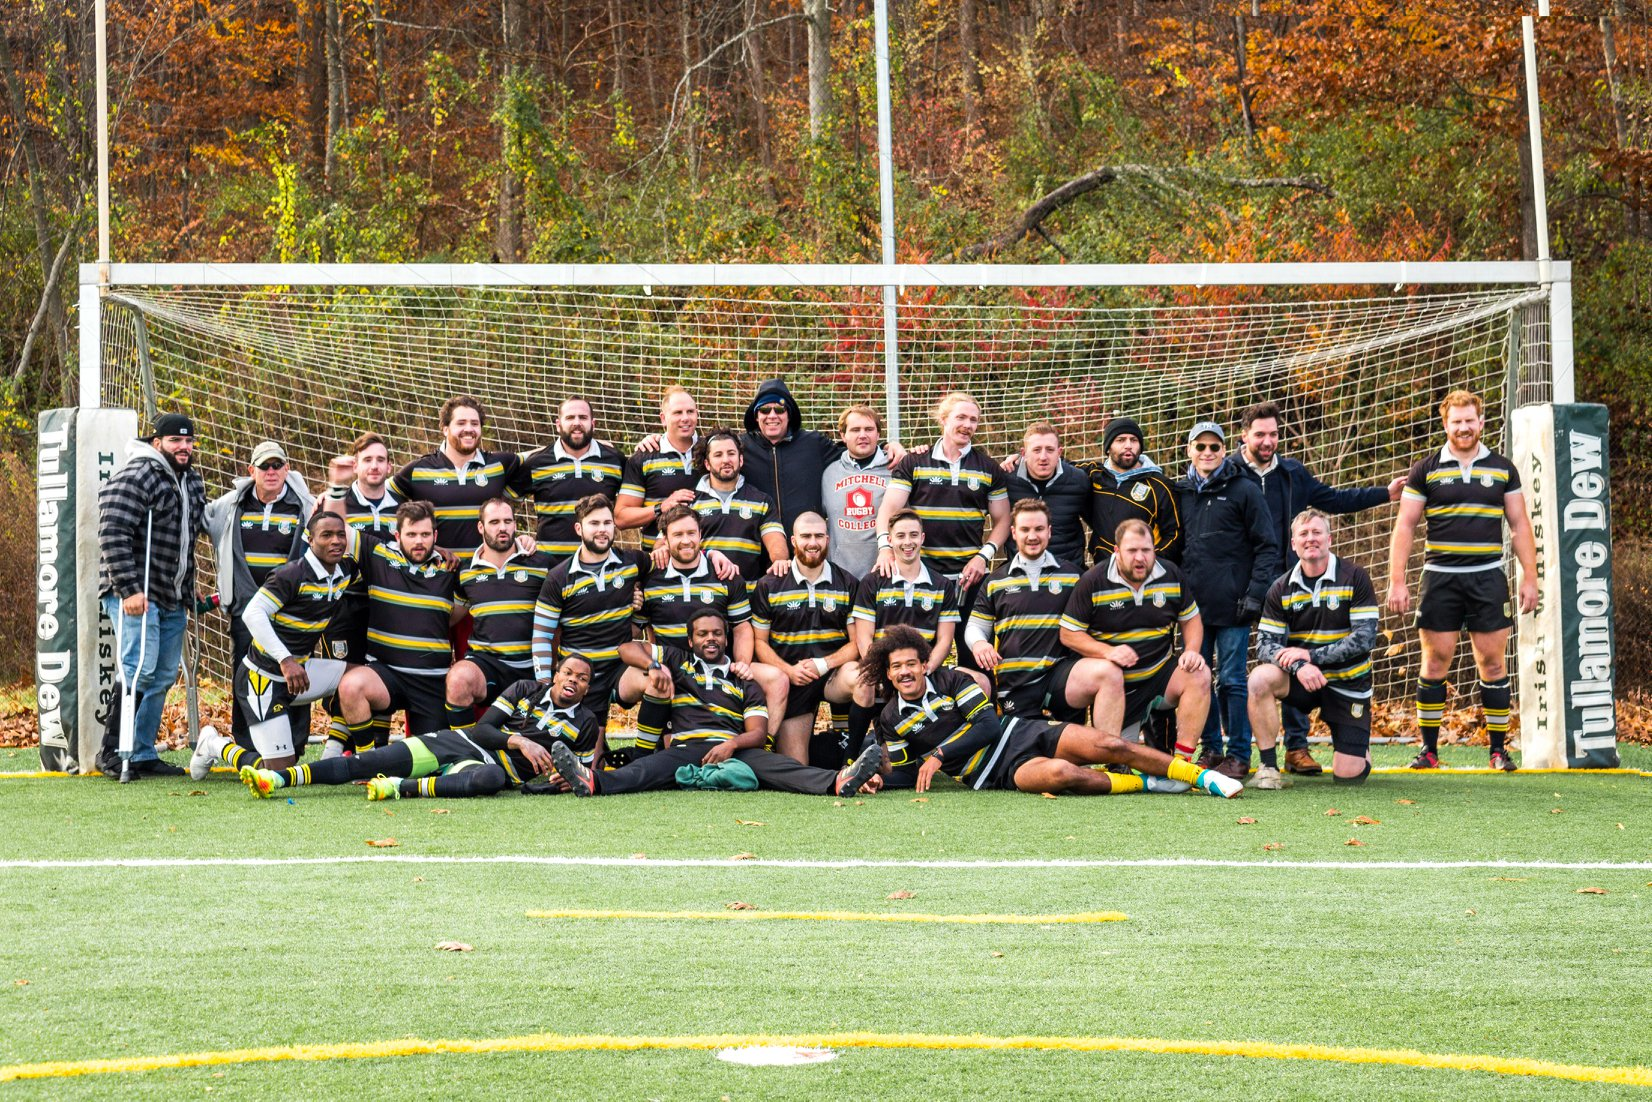 New Haven Rugby